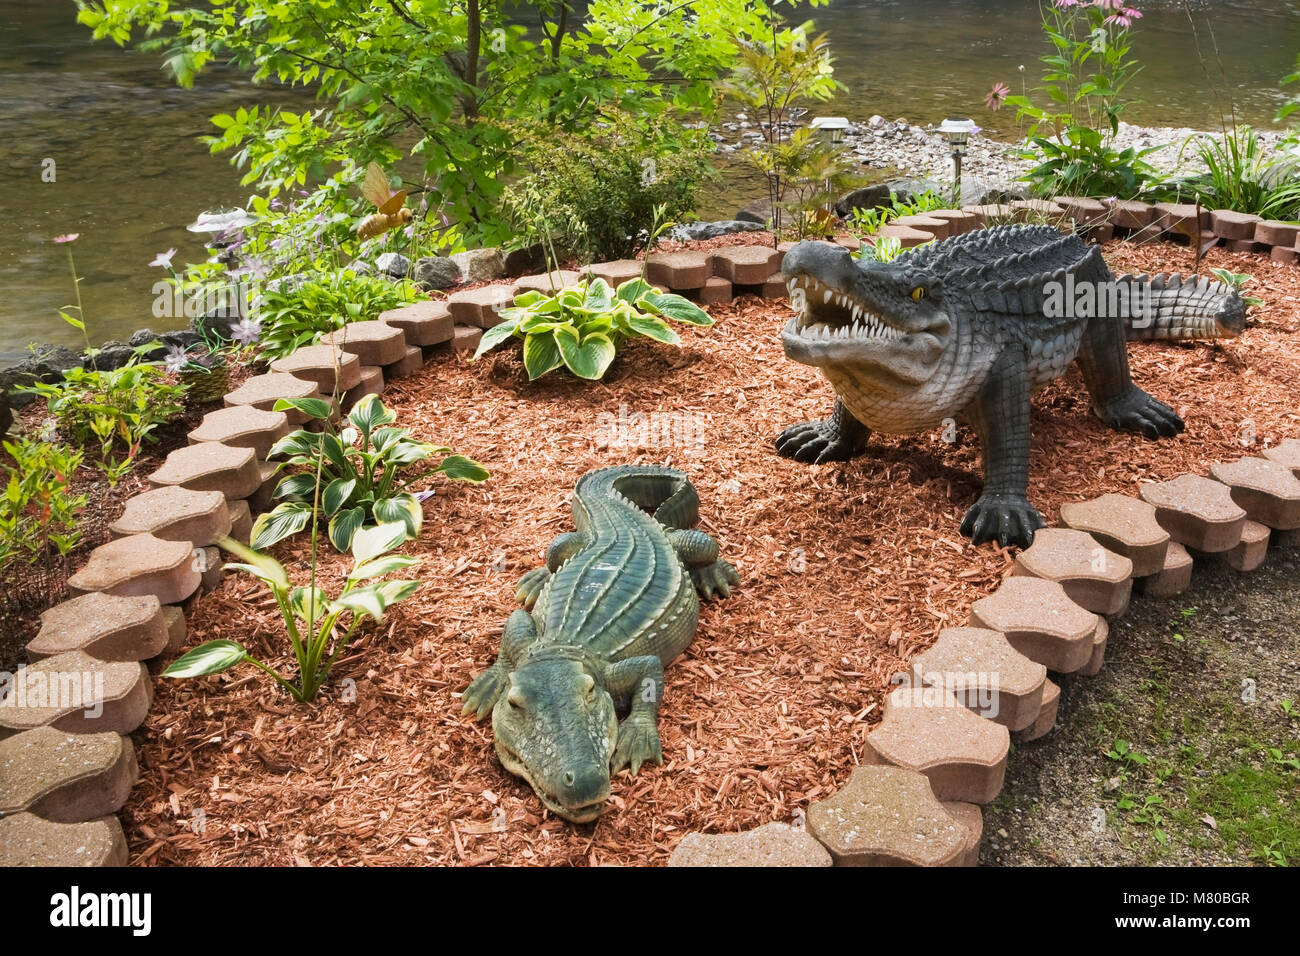 Alligator And Crocodile Statues In A Landscaped Front Yard Garden In  Summer.   Stock Image